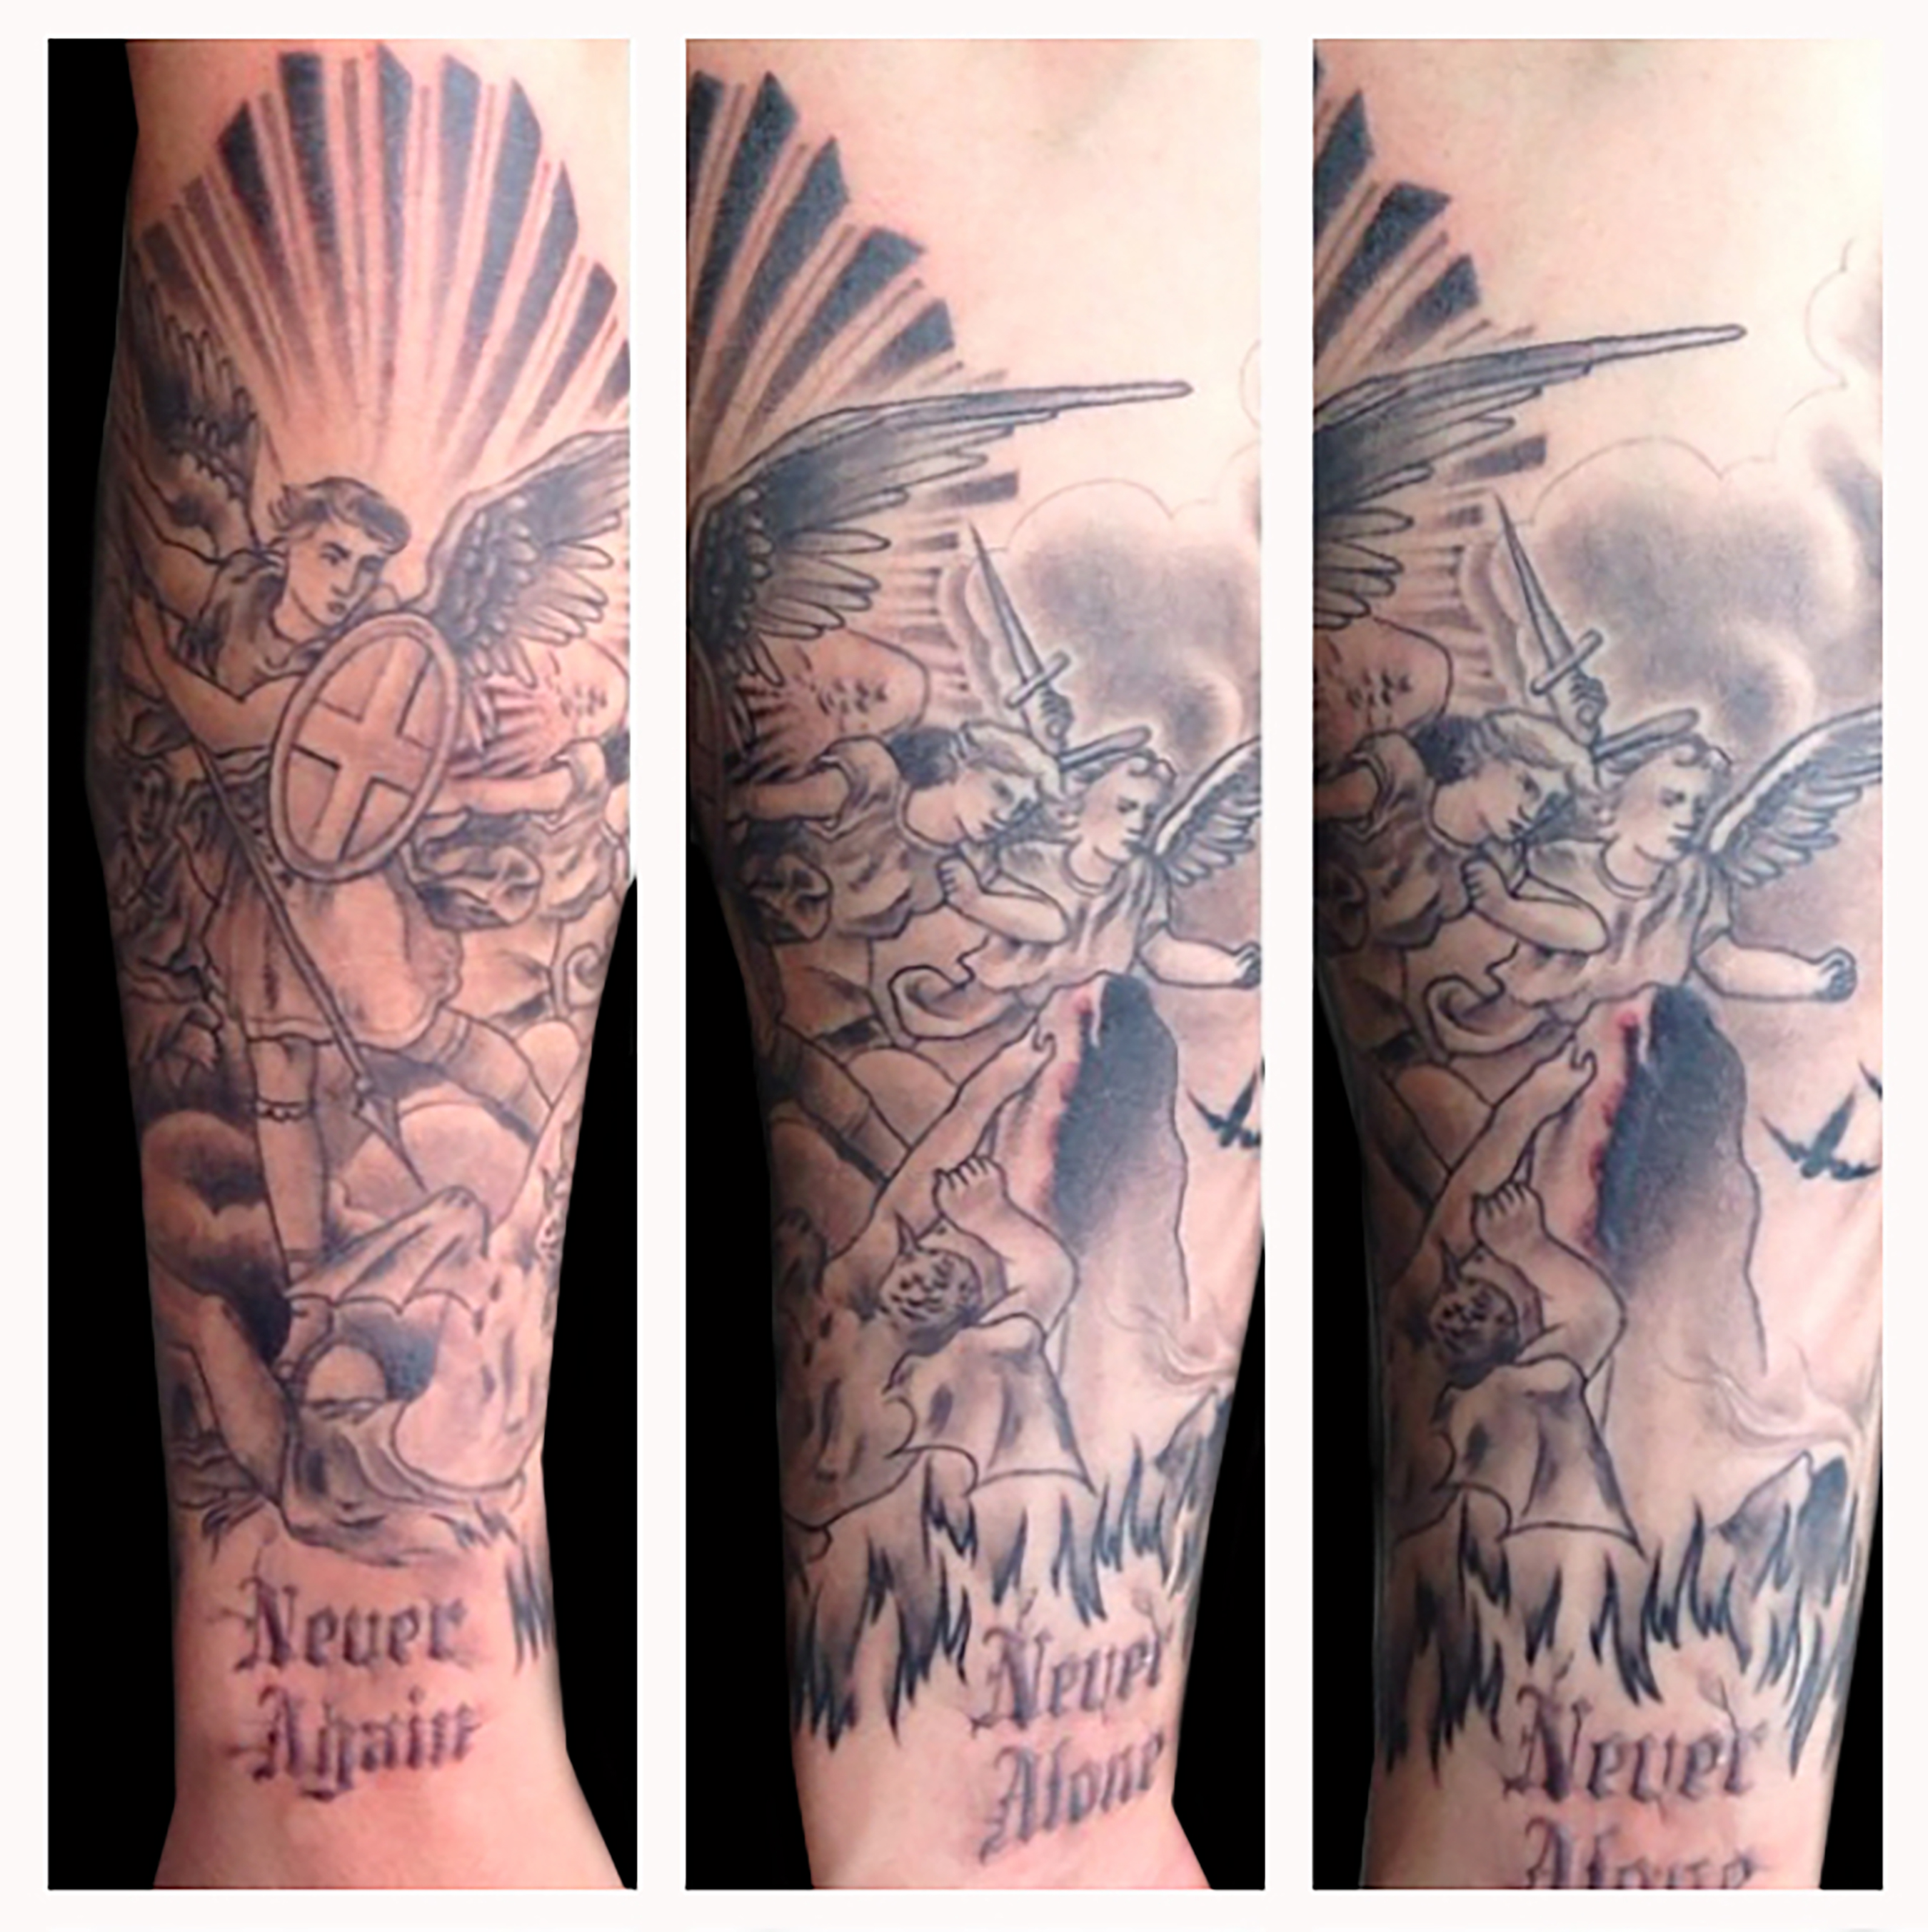 Tattoo Removal Albany Ny - die Bilder coleection